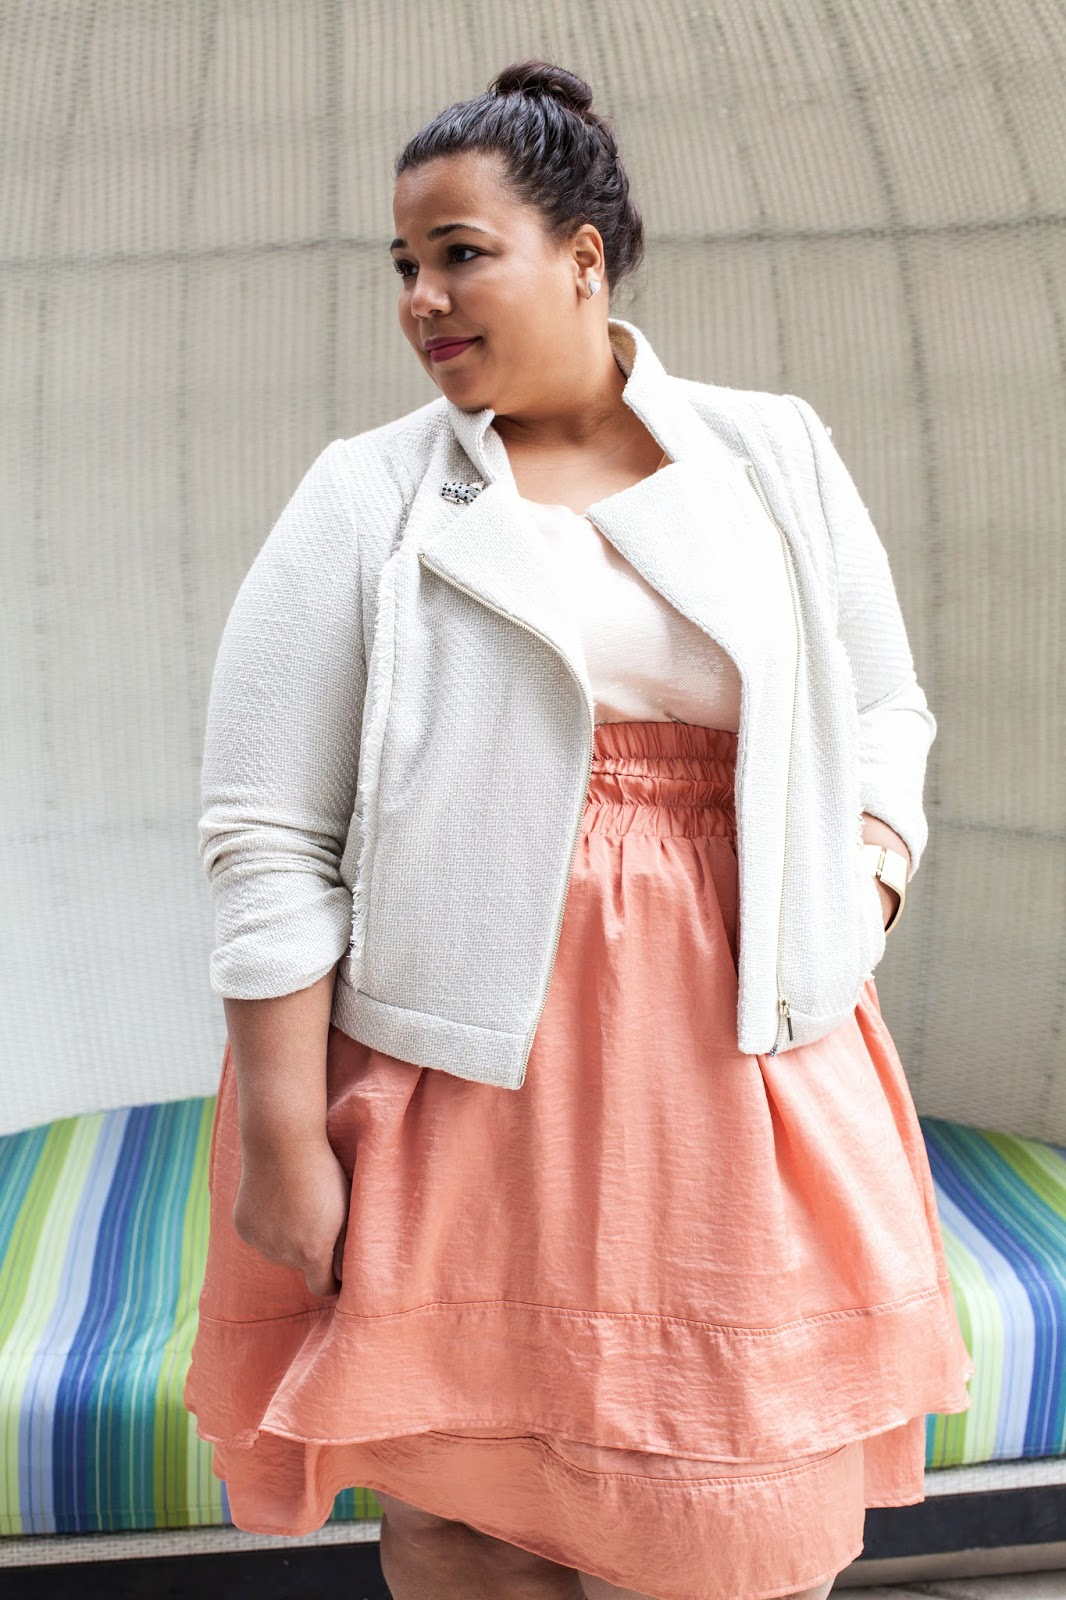 Plus size fashion, plus size tweed jacket, Lane Bryant